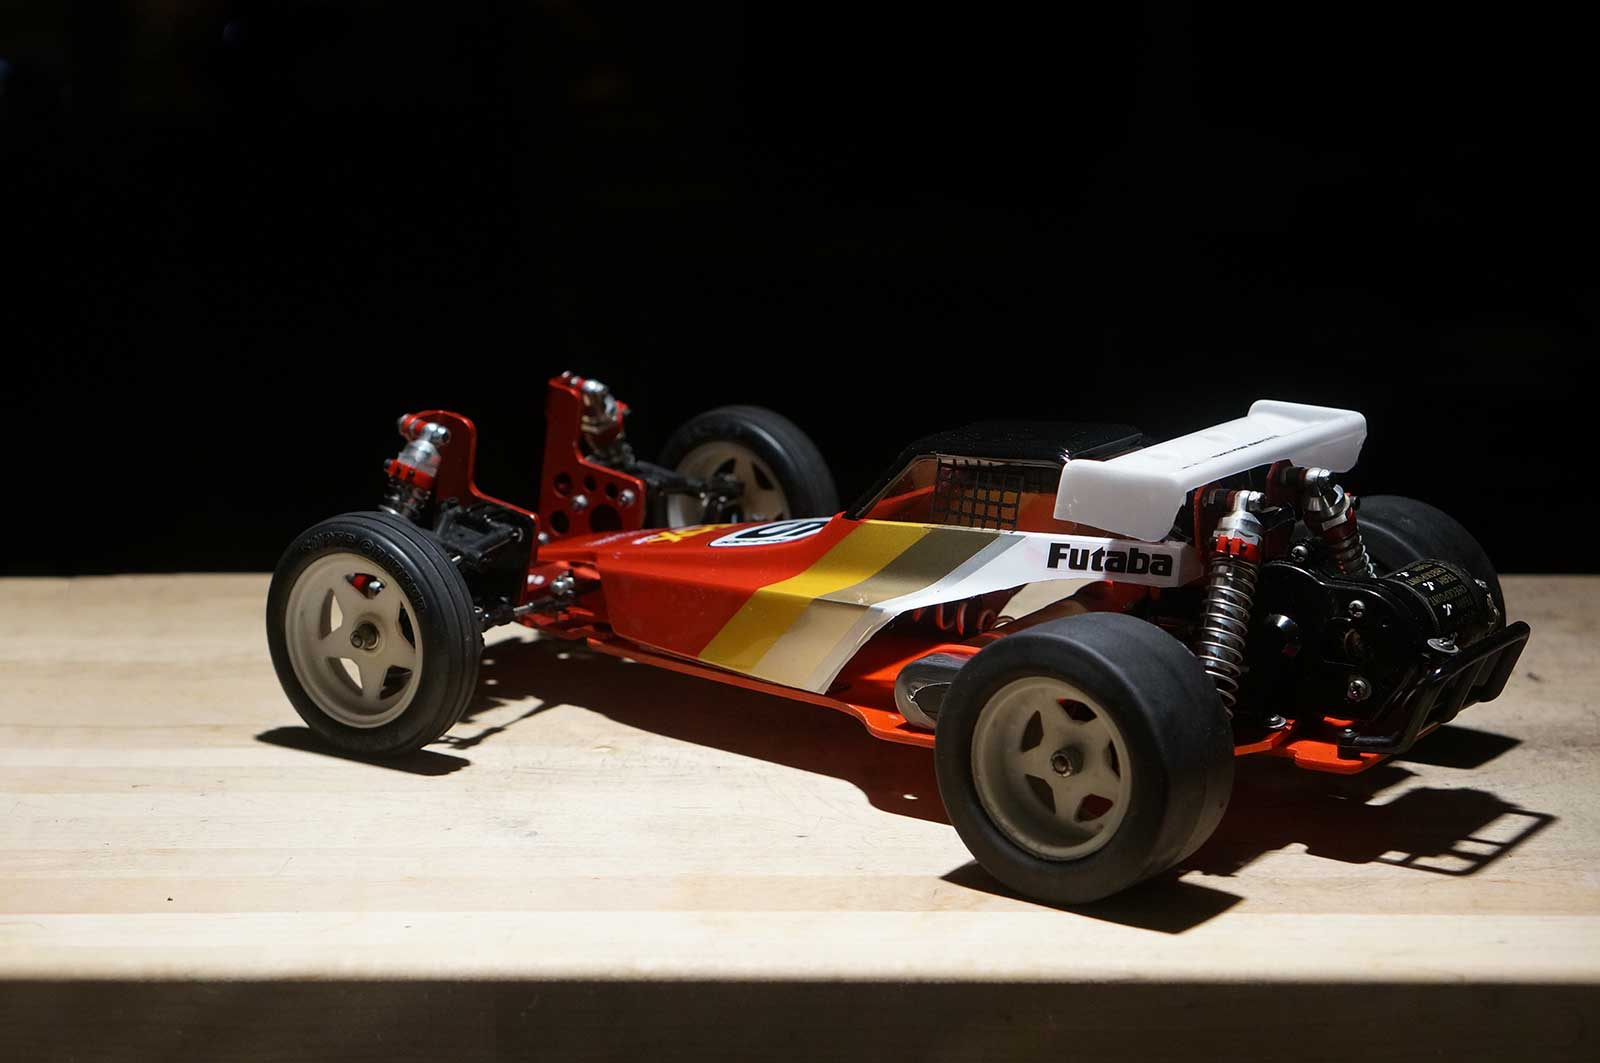 Tamiya Hot Trick Red Fox